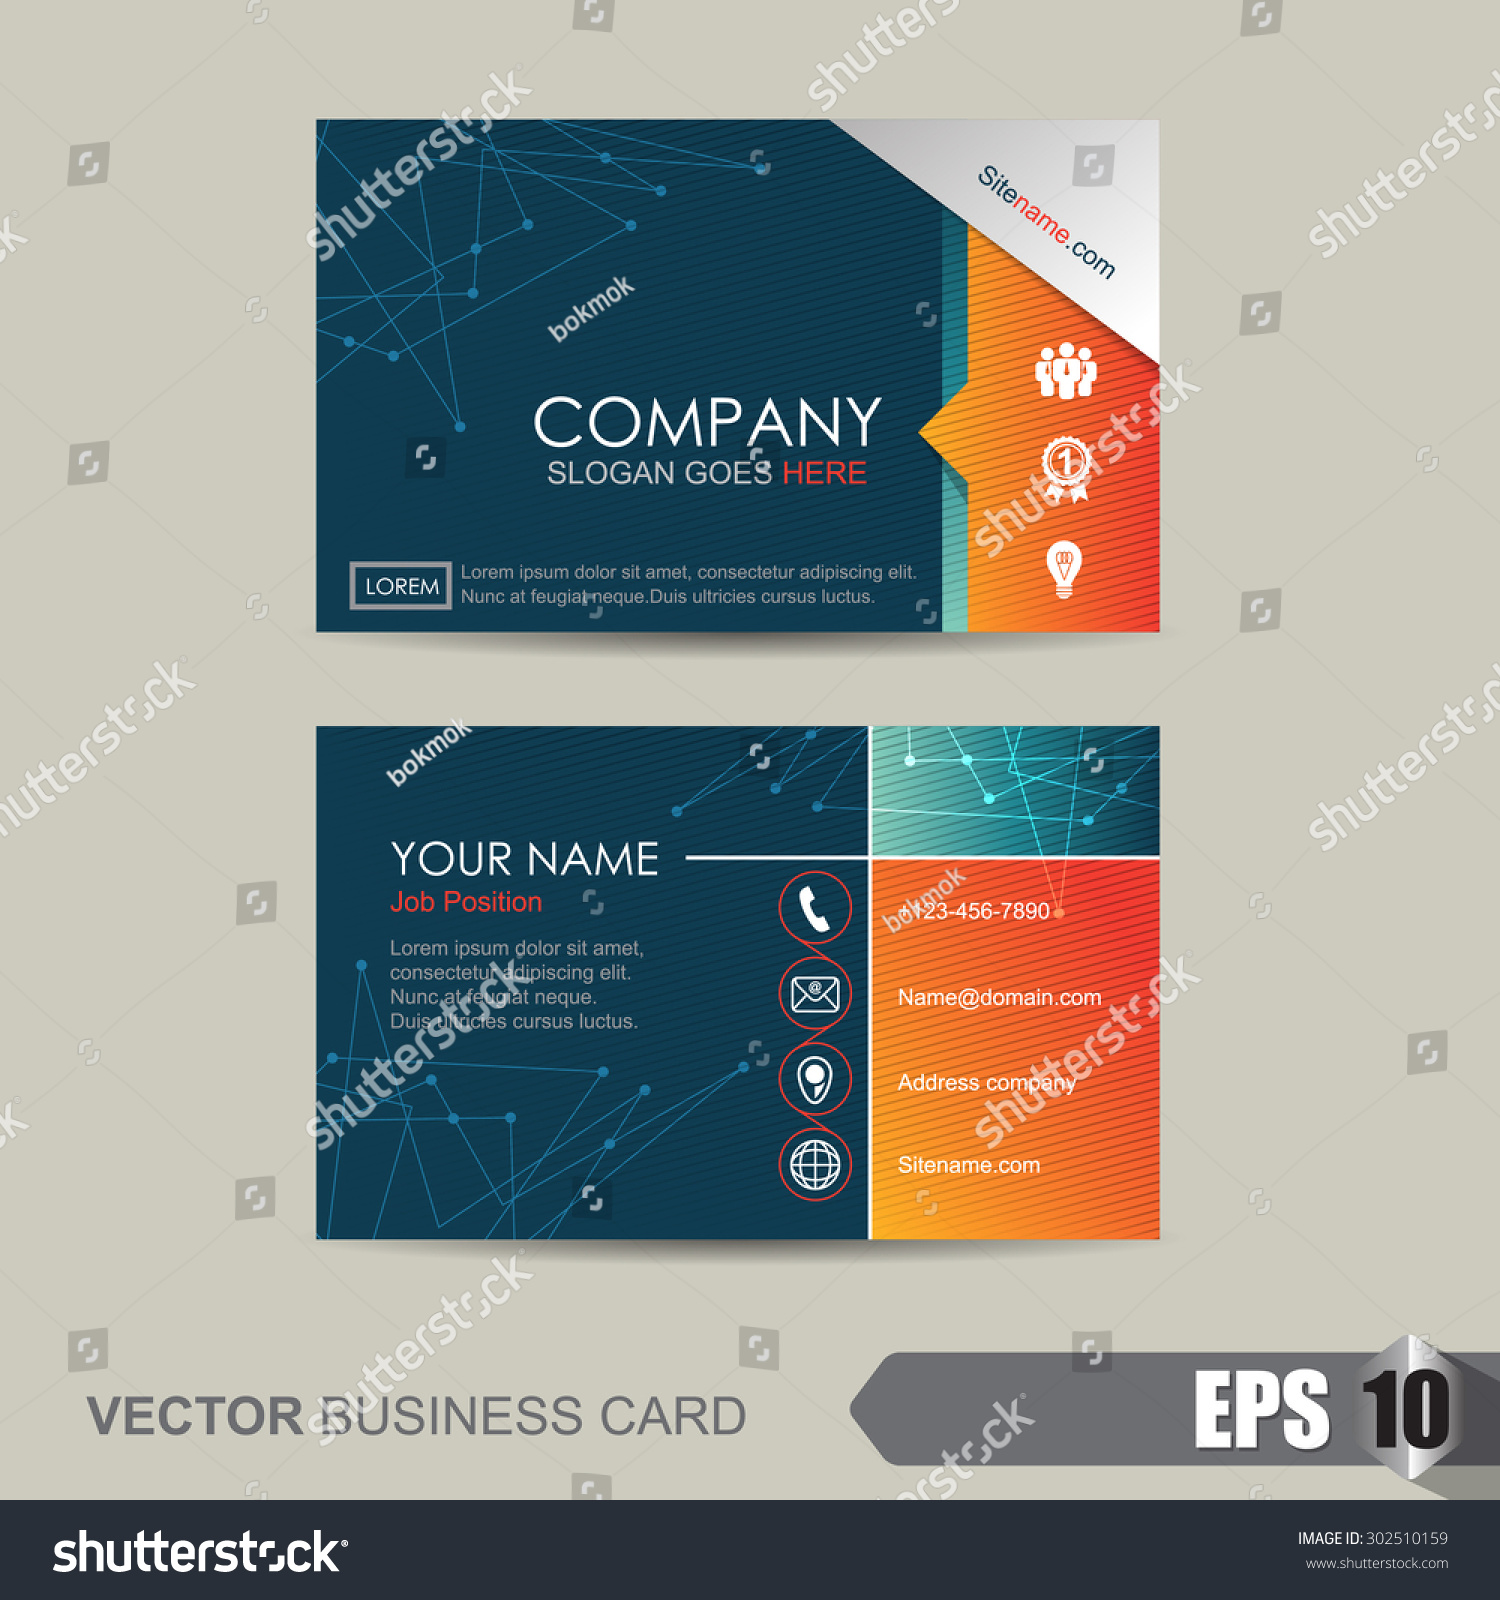 vector illustrationbusiness card template abstract